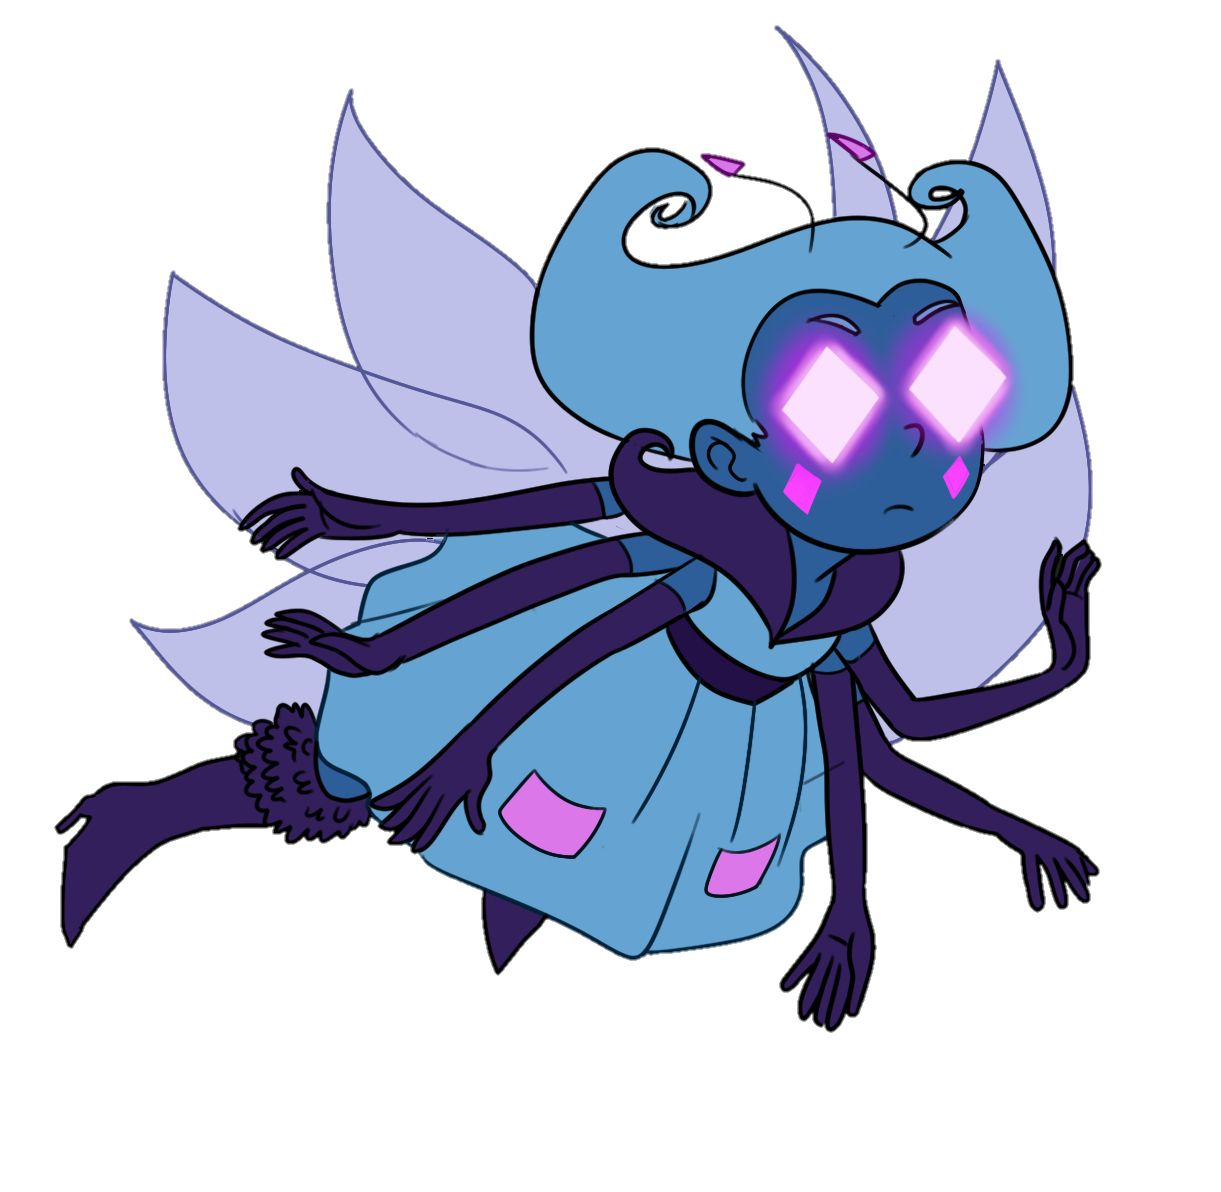 Moon Butterfly mewberty | Star vs  The Forces of Evil | Star vs the